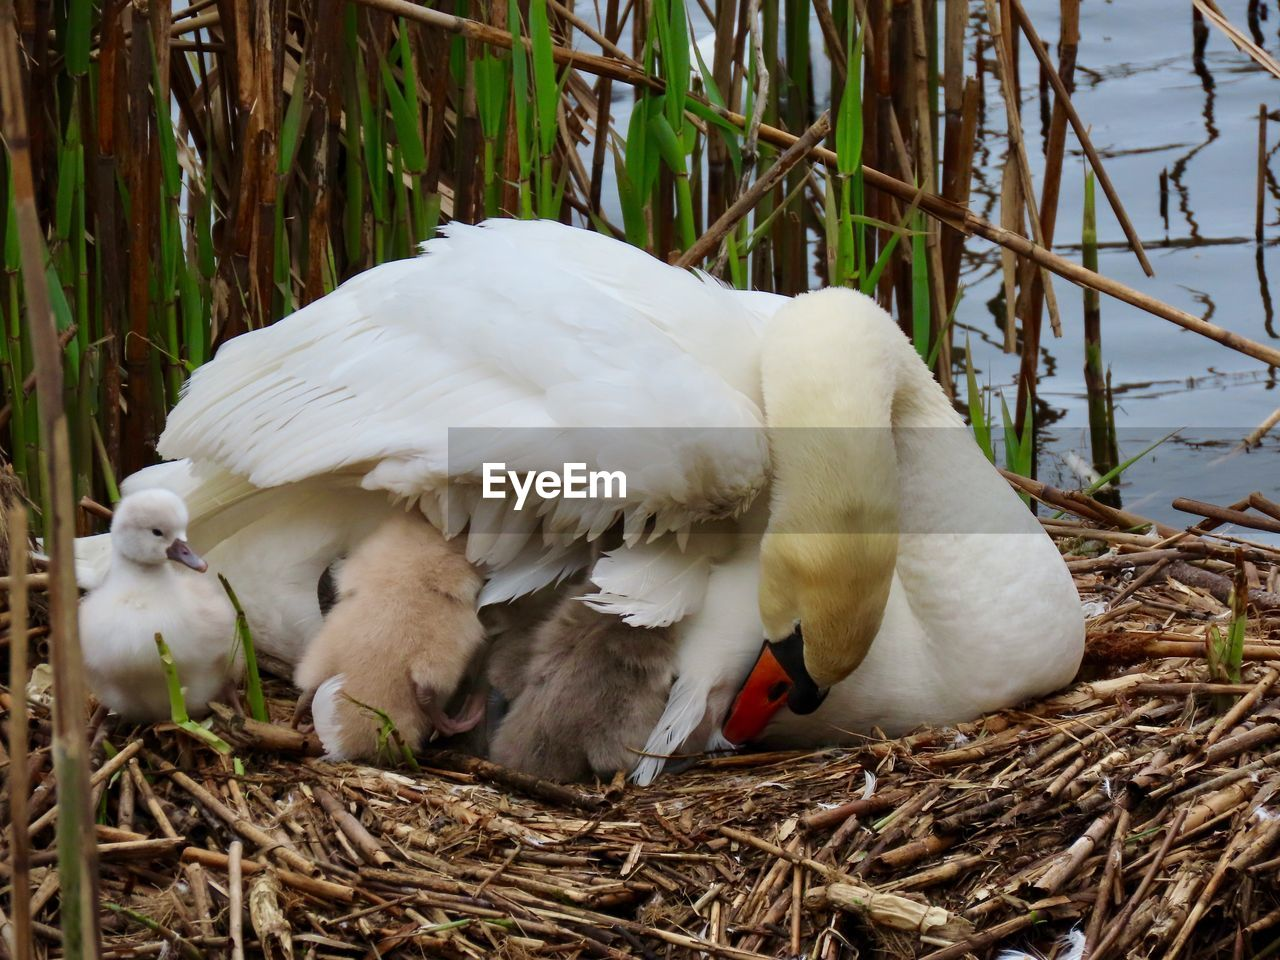 bird, animal themes, animal, vertebrate, animal wildlife, animals in the wild, white color, animal nest, group of animals, day, no people, young bird, bird nest, nature, plant, young animal, two animals, animal family, close-up, swan, outdoors, cygnet